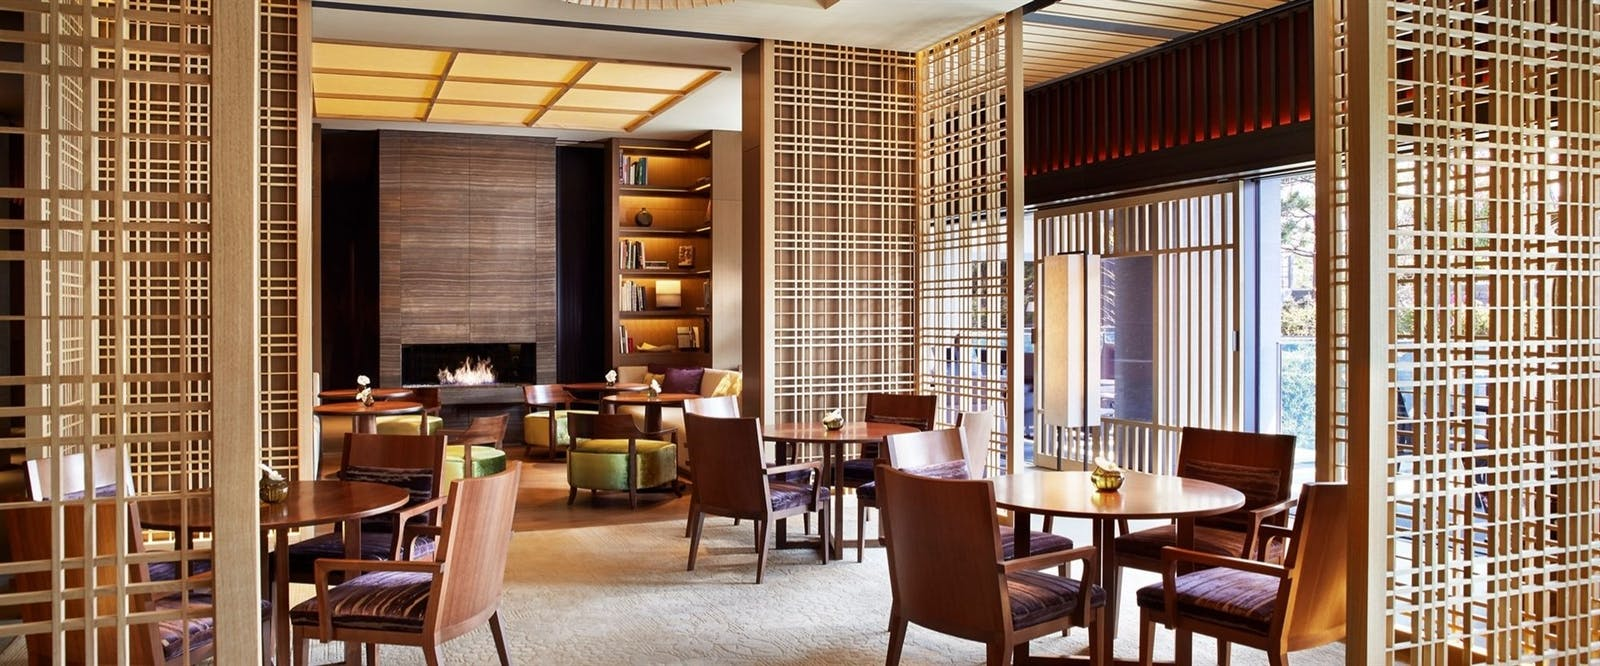 Lobby Lounge at The Ritz-Carlton Kyoto, Japan